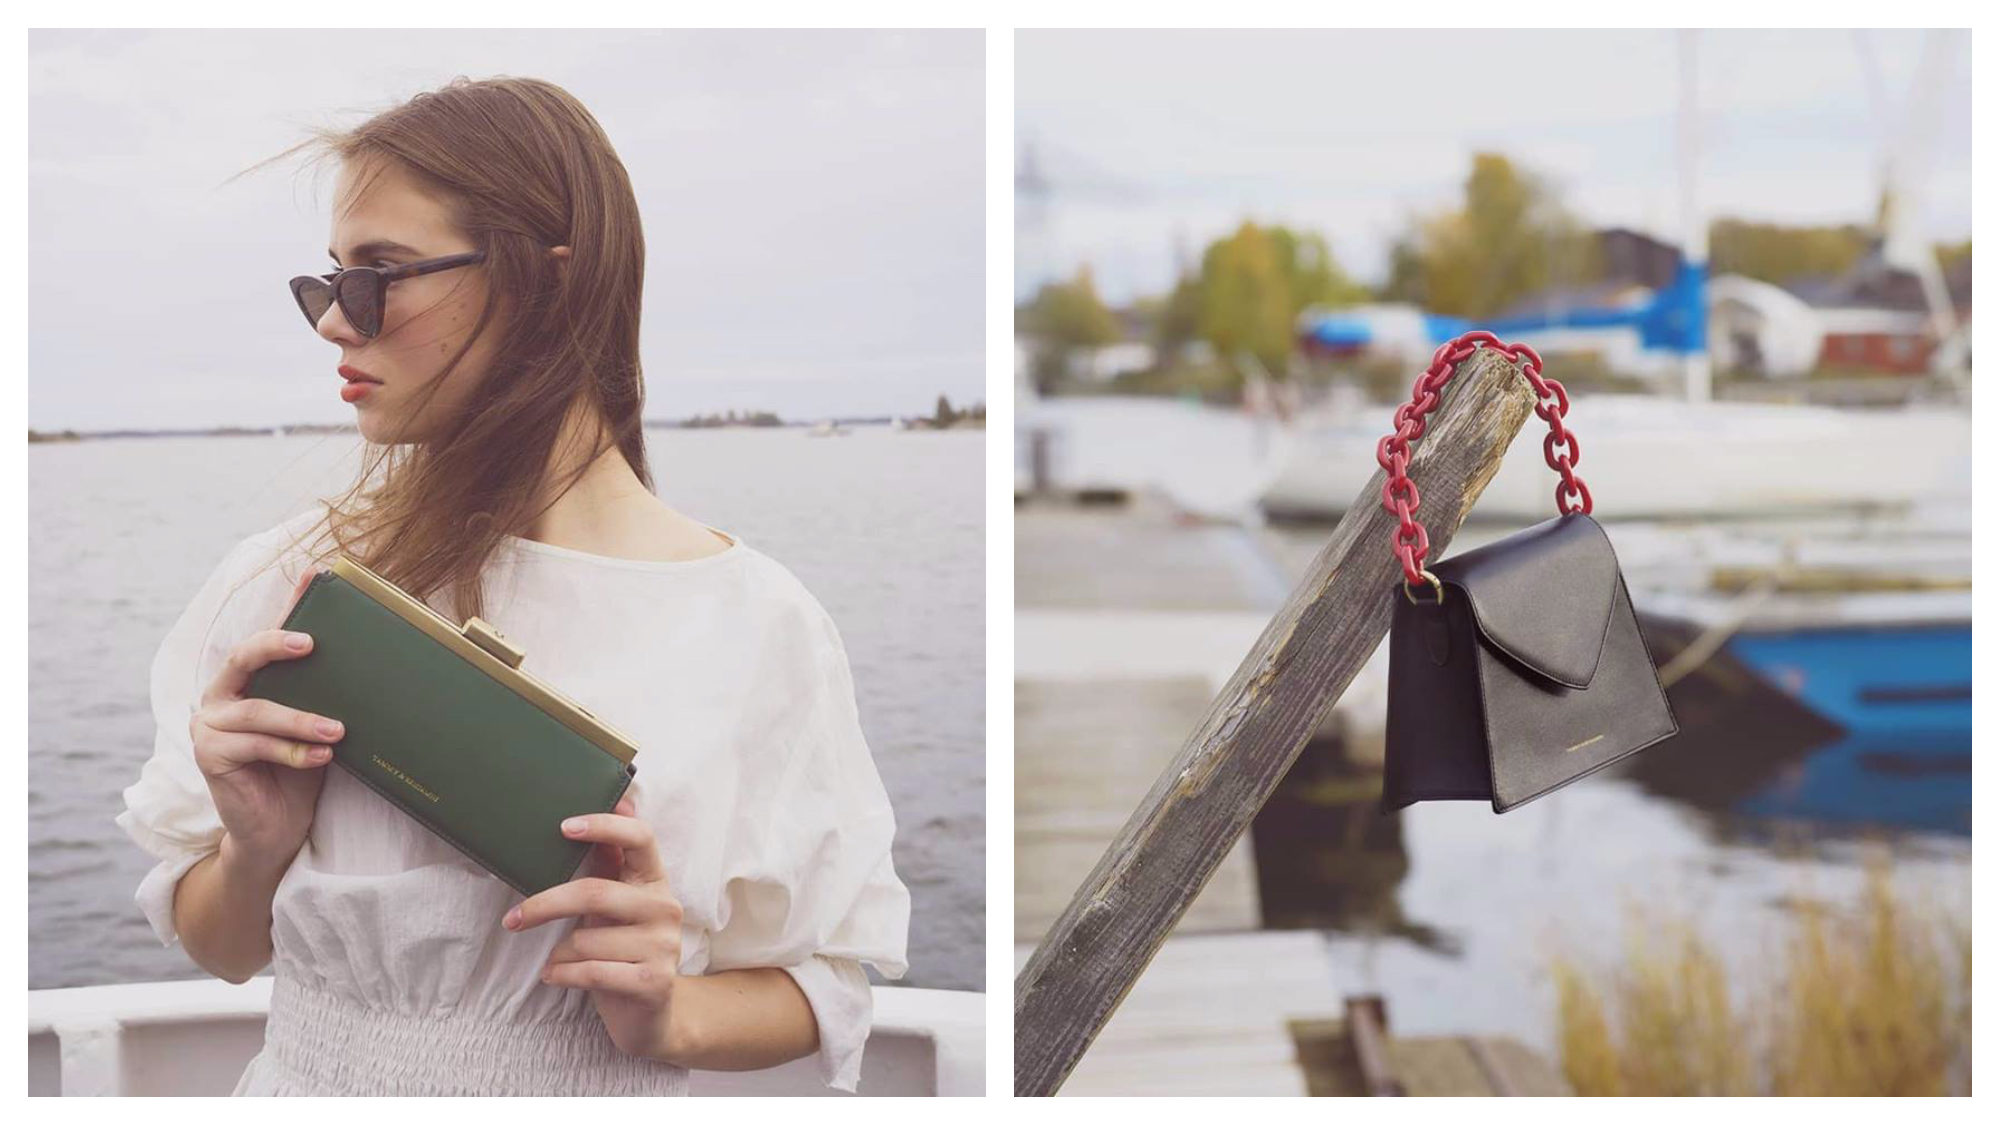 A sea green clutch purse held by a model wearing a white dress at the seaside (left) and a black handbag with a red chain hooked on a piece of timber at a port (right), both by Tammy and Benjamin.